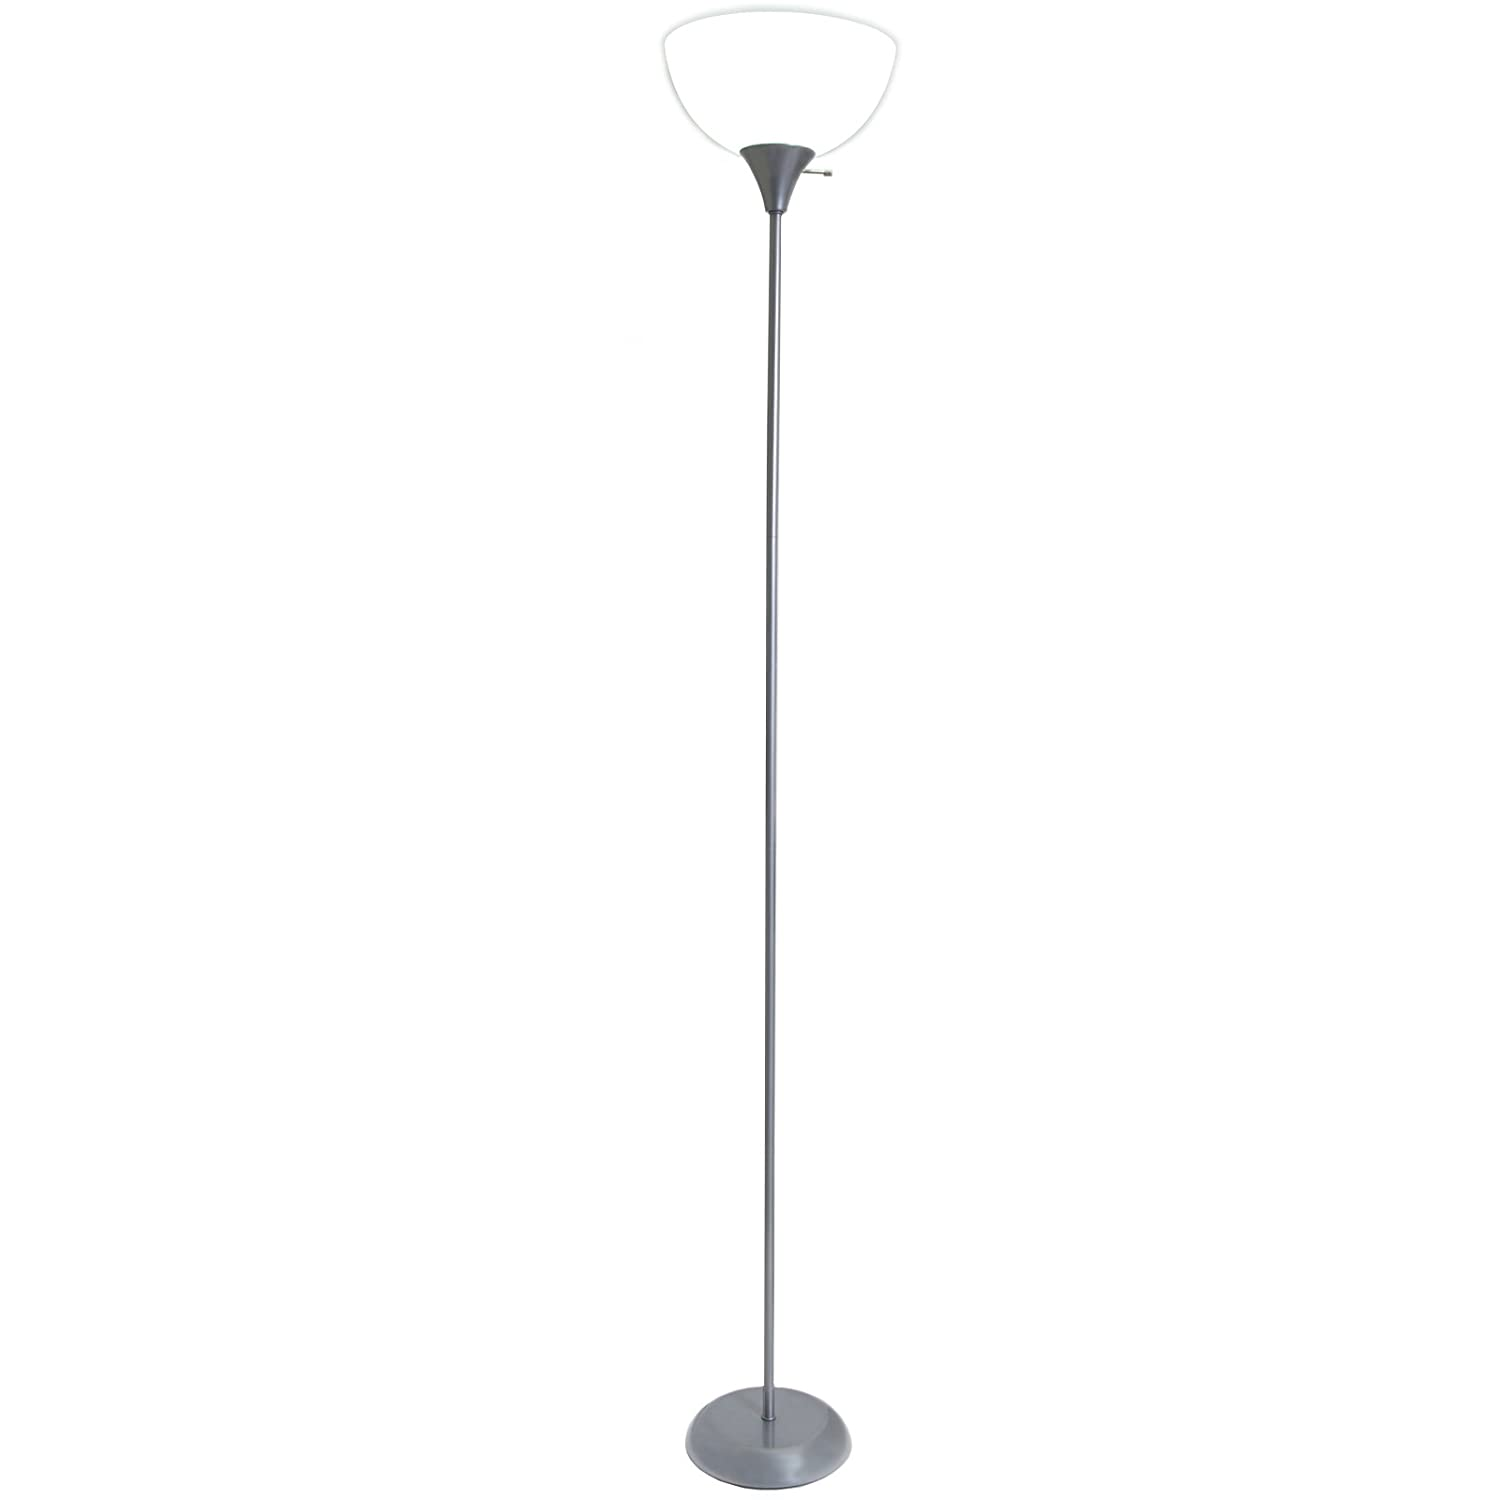 living accents torchiere floor lamp a silver finish   - living accents torchiere floor lamp a silver finish    amazoncom